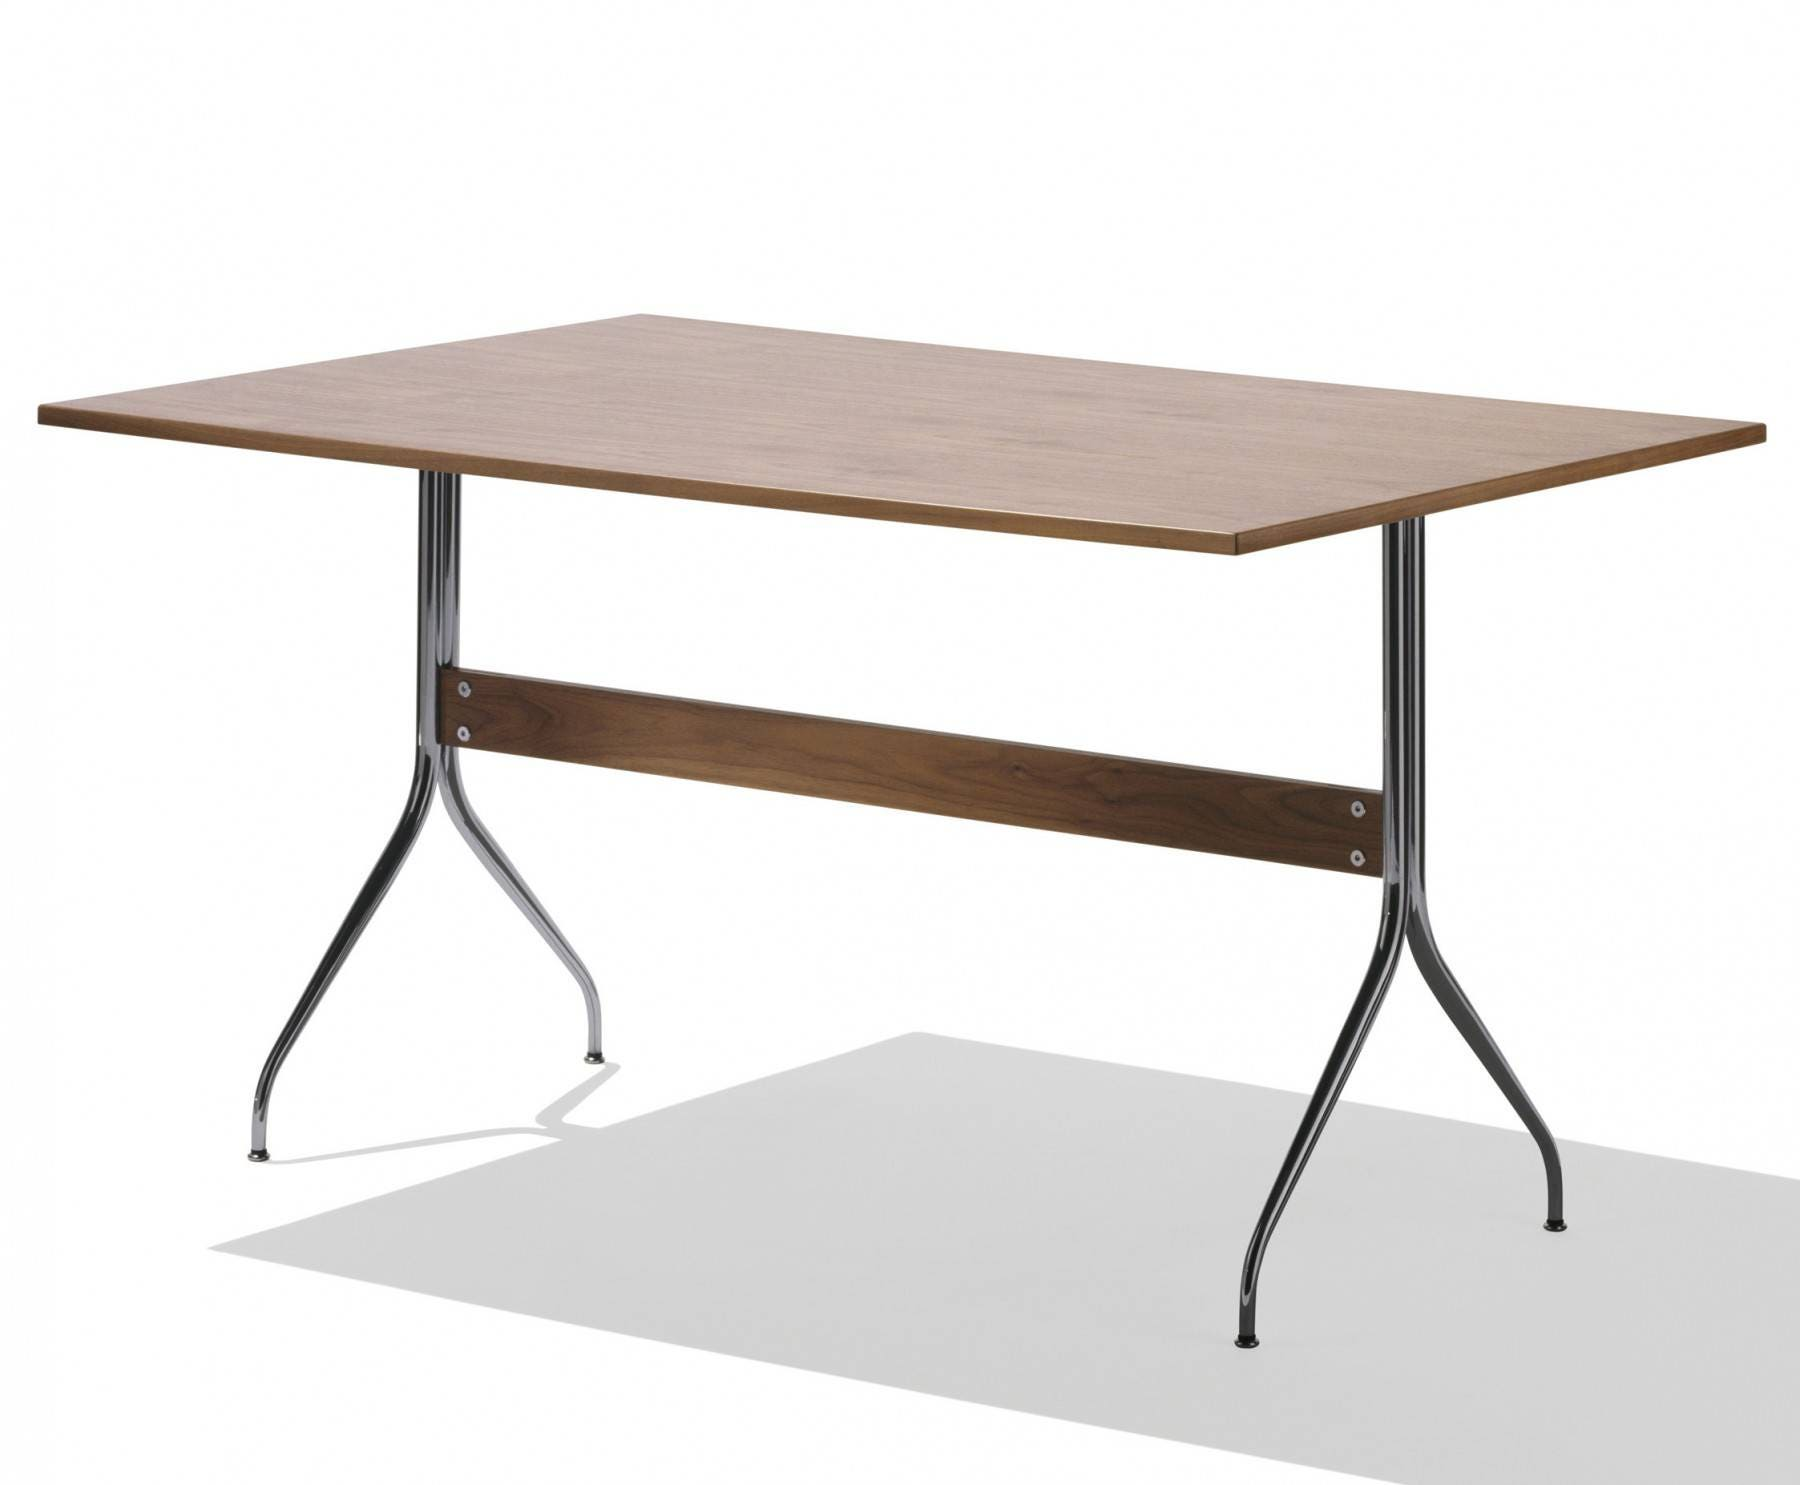 Herman miller nelson swag leg work table rectangular gr for Nelson swag leg table